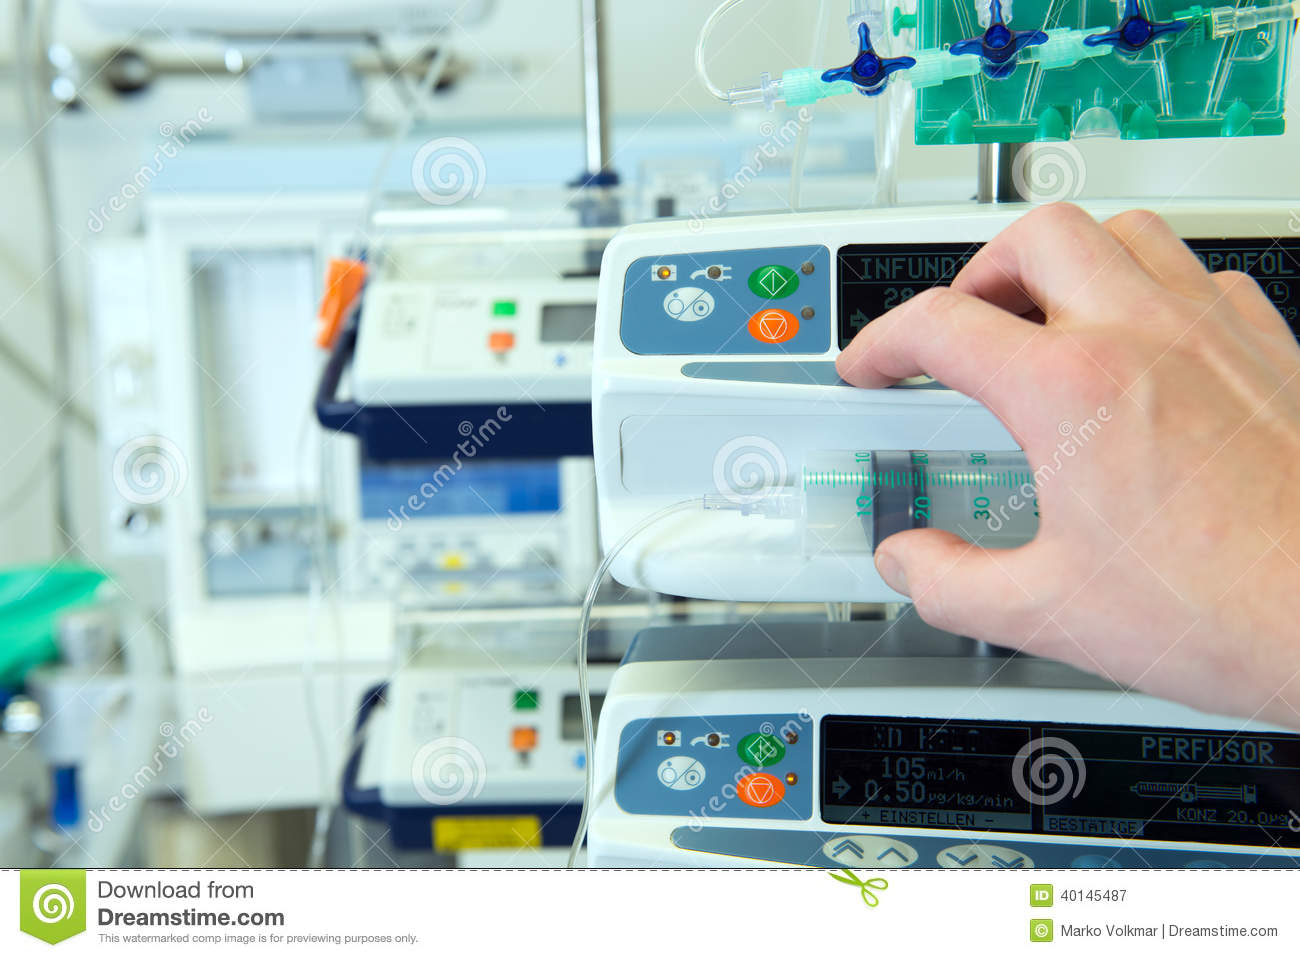 Medical Perfusion Pump Stock Image Image Of Drug Instrument 40145487